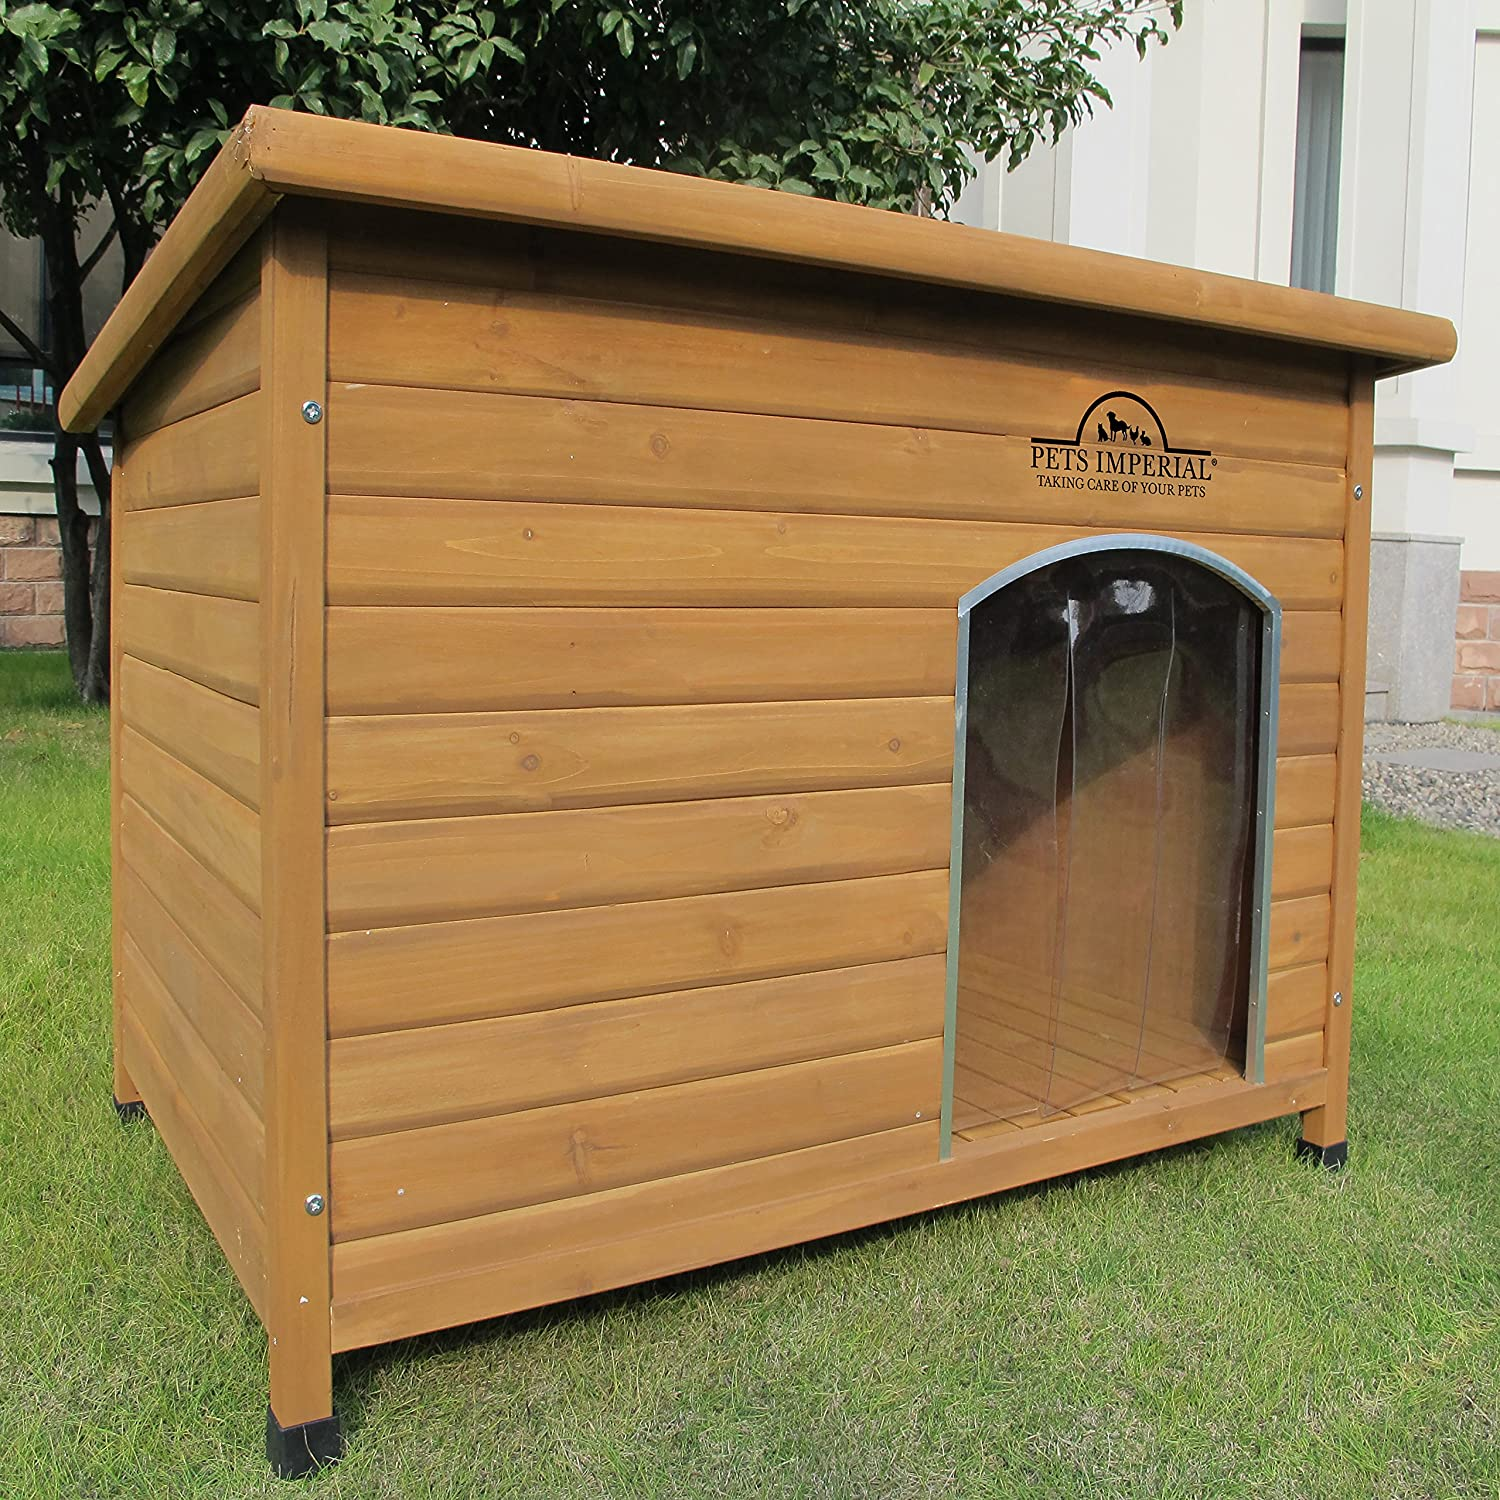 Pets Imperial® Extra Large Insulated Norfolk Wooden Dog Kennel